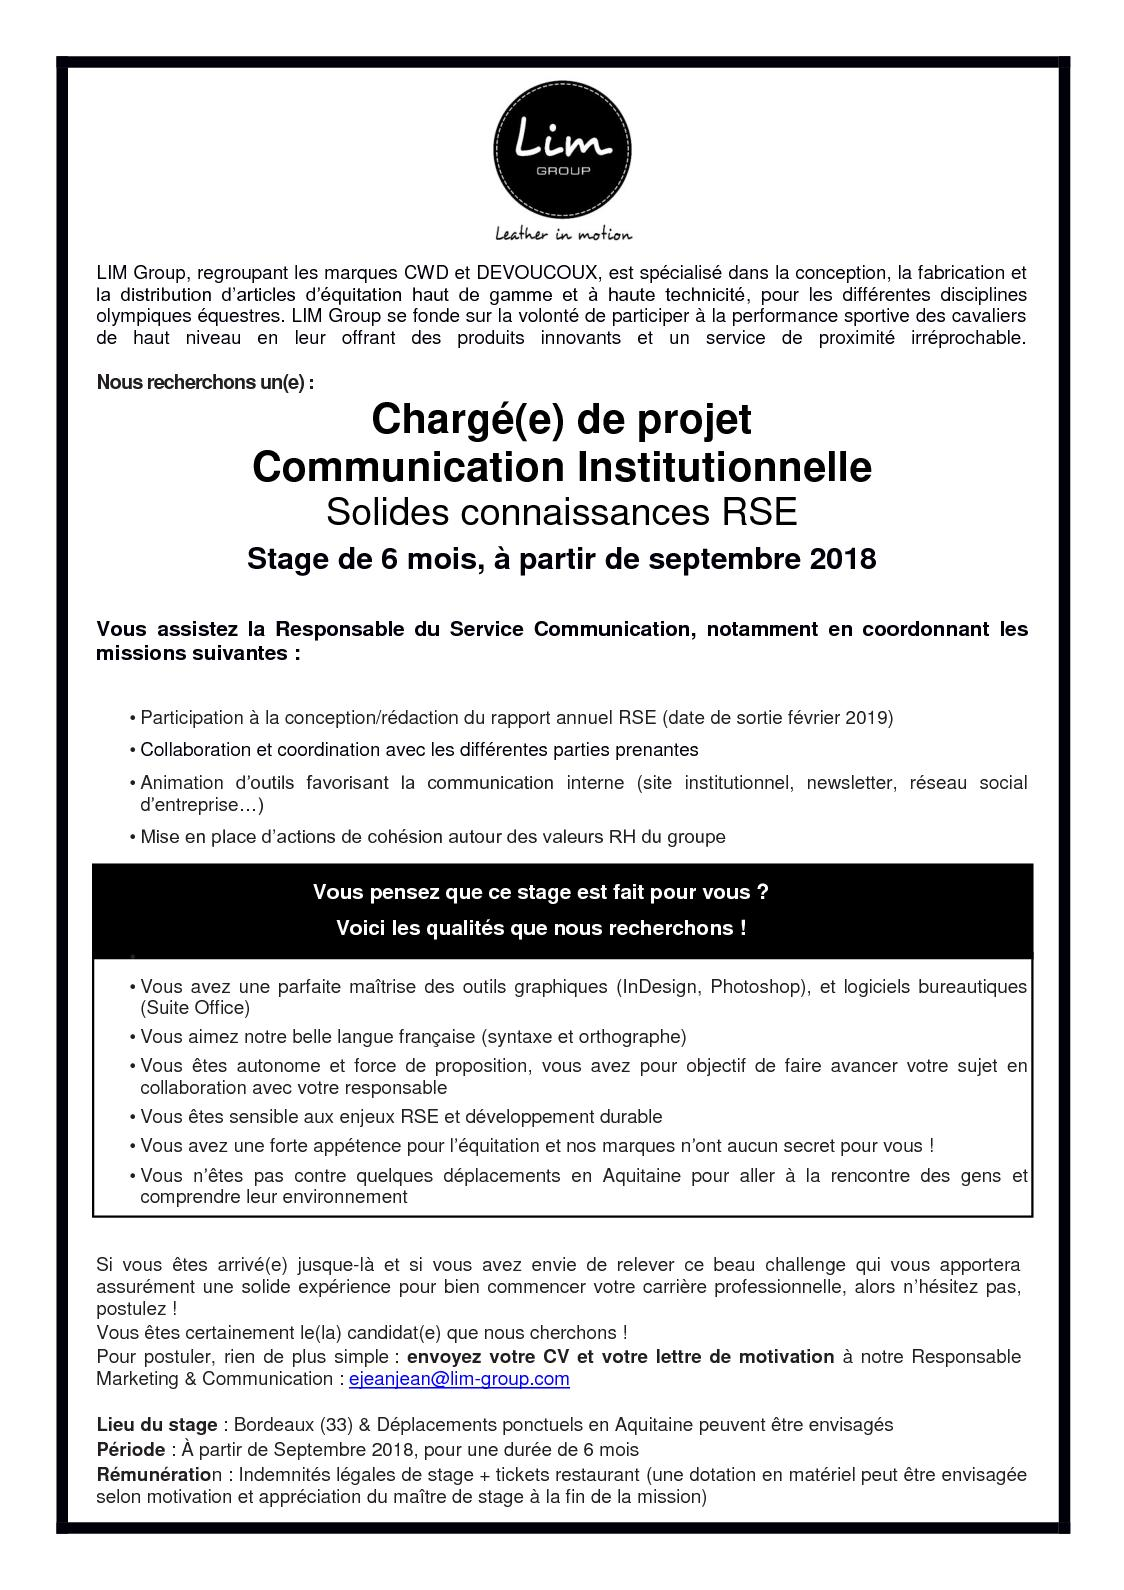 Calaméo Offre Stage Communication Institutionnelle Rse Lim